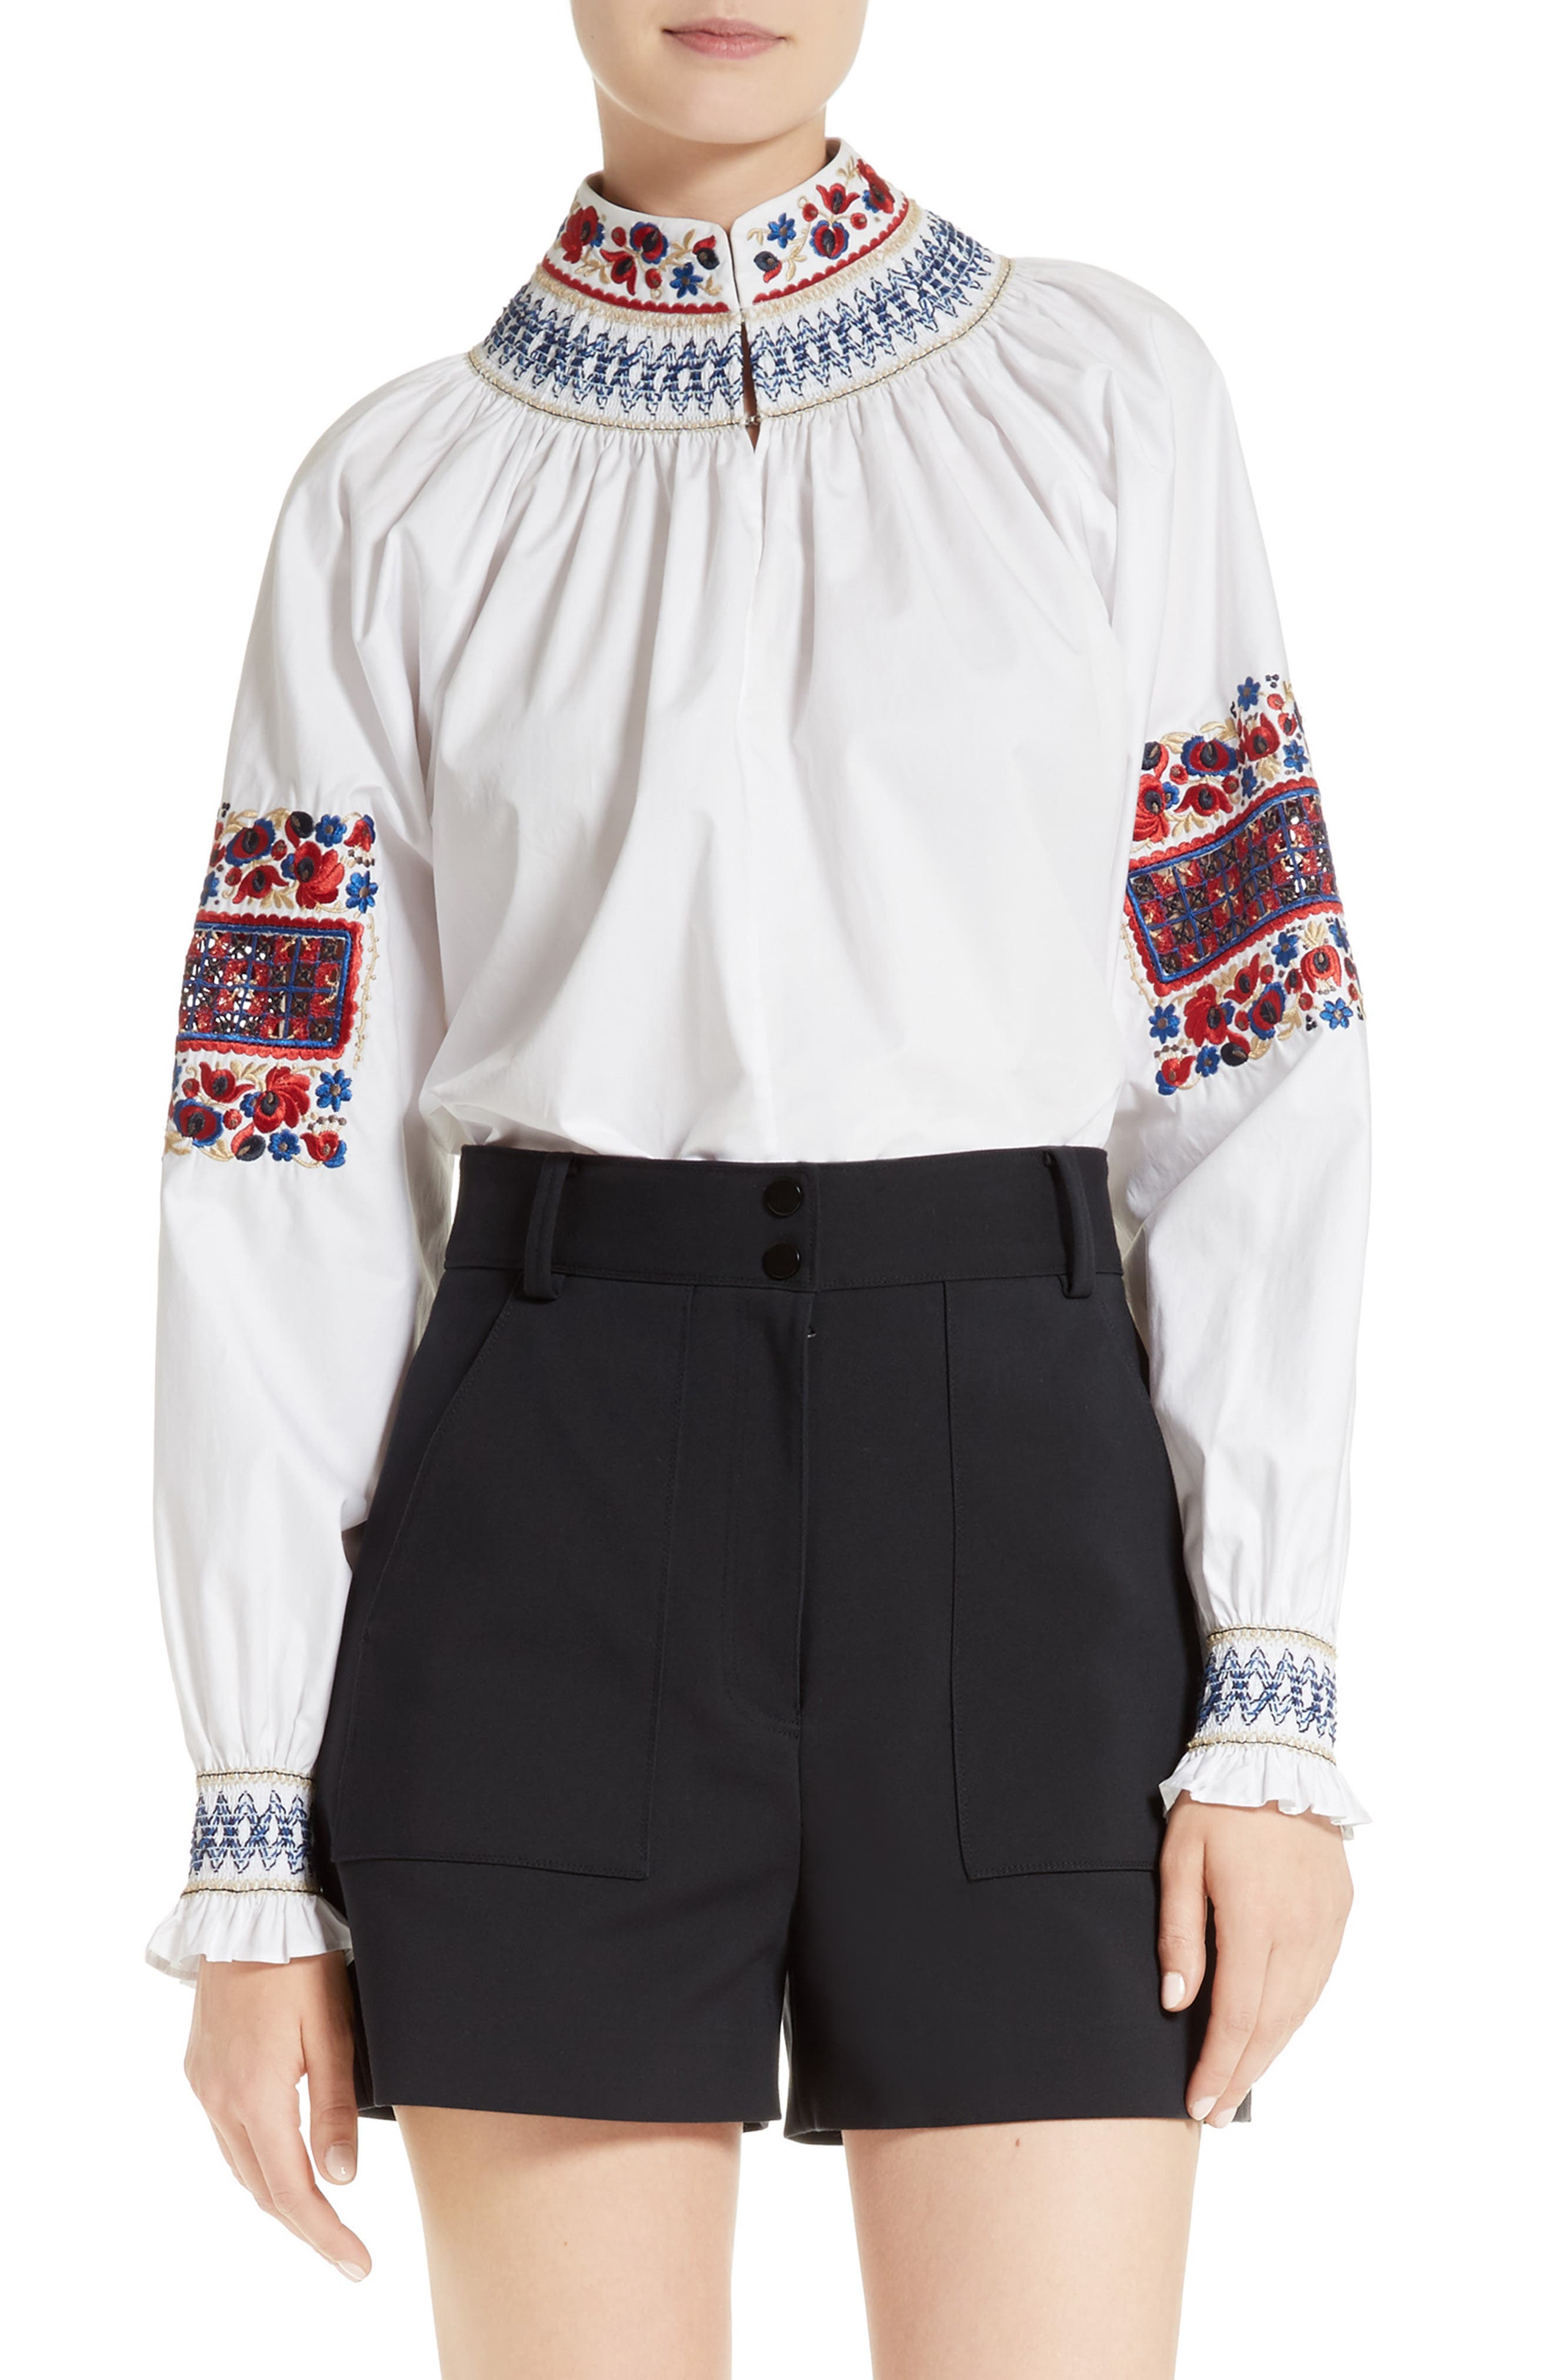 Alternate Image 1 Selected - Tibi Cora Embroidered Top